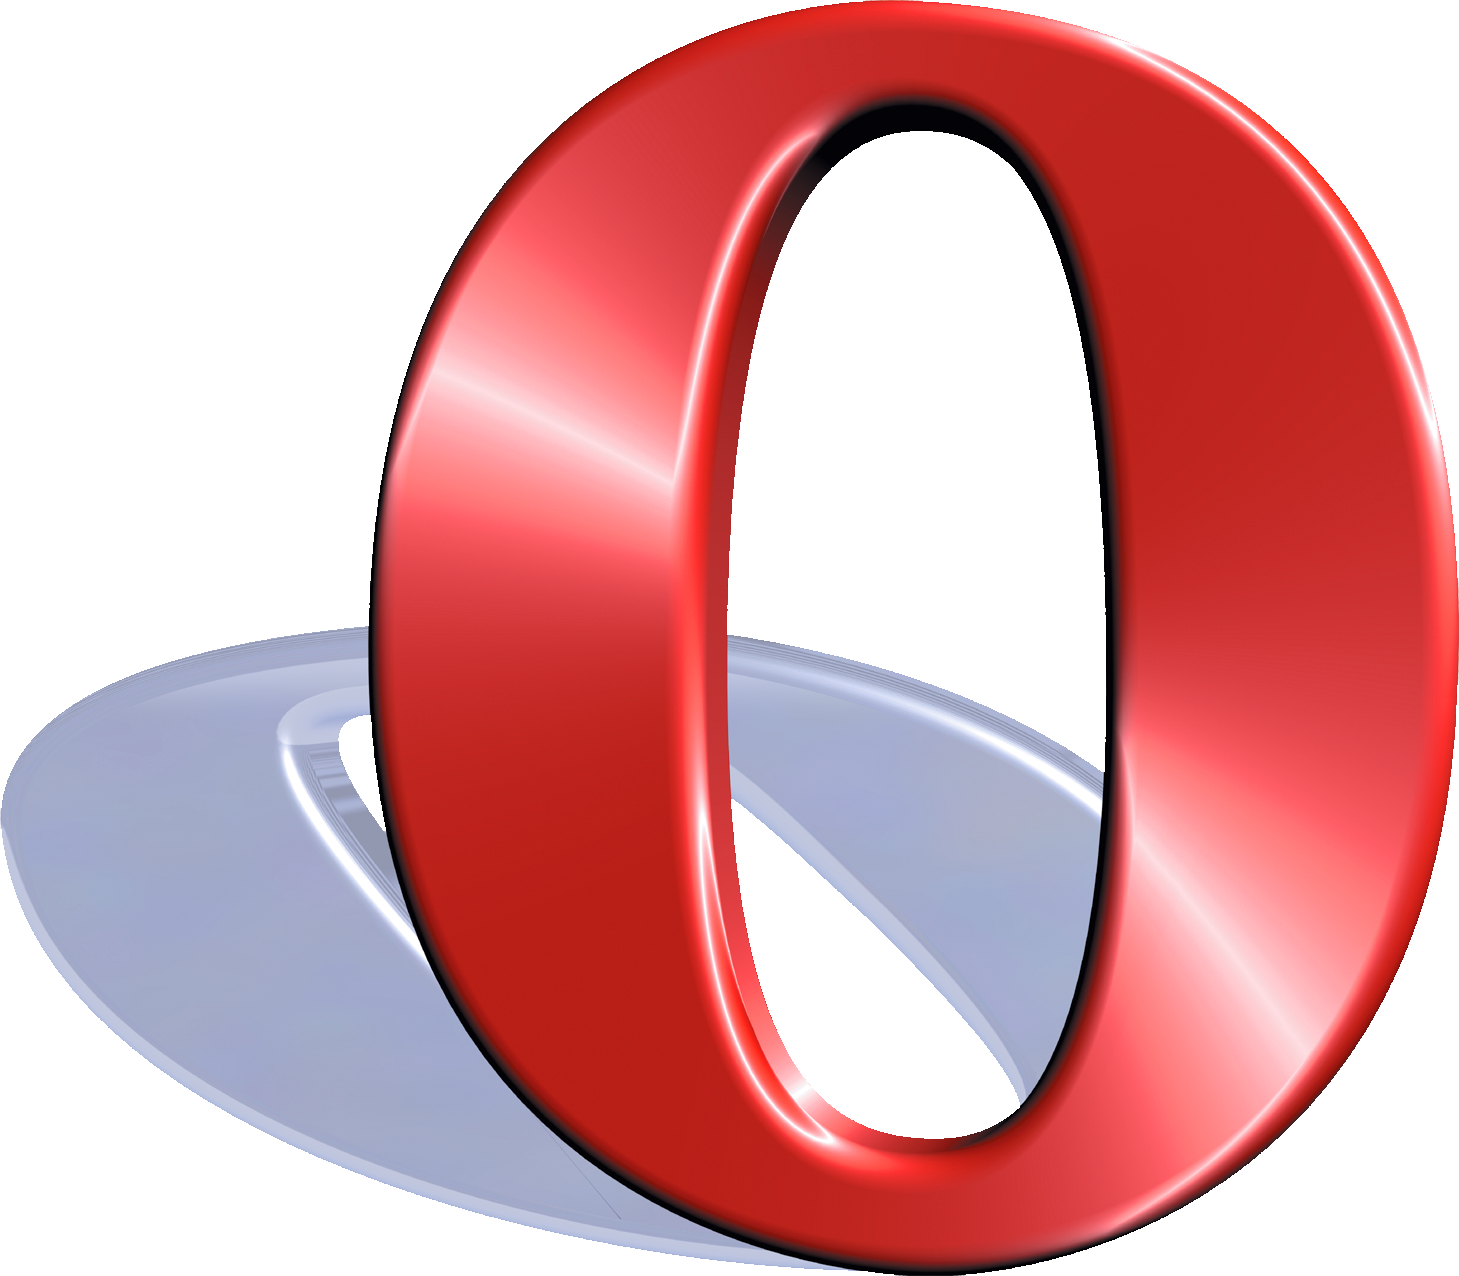 opera_icon